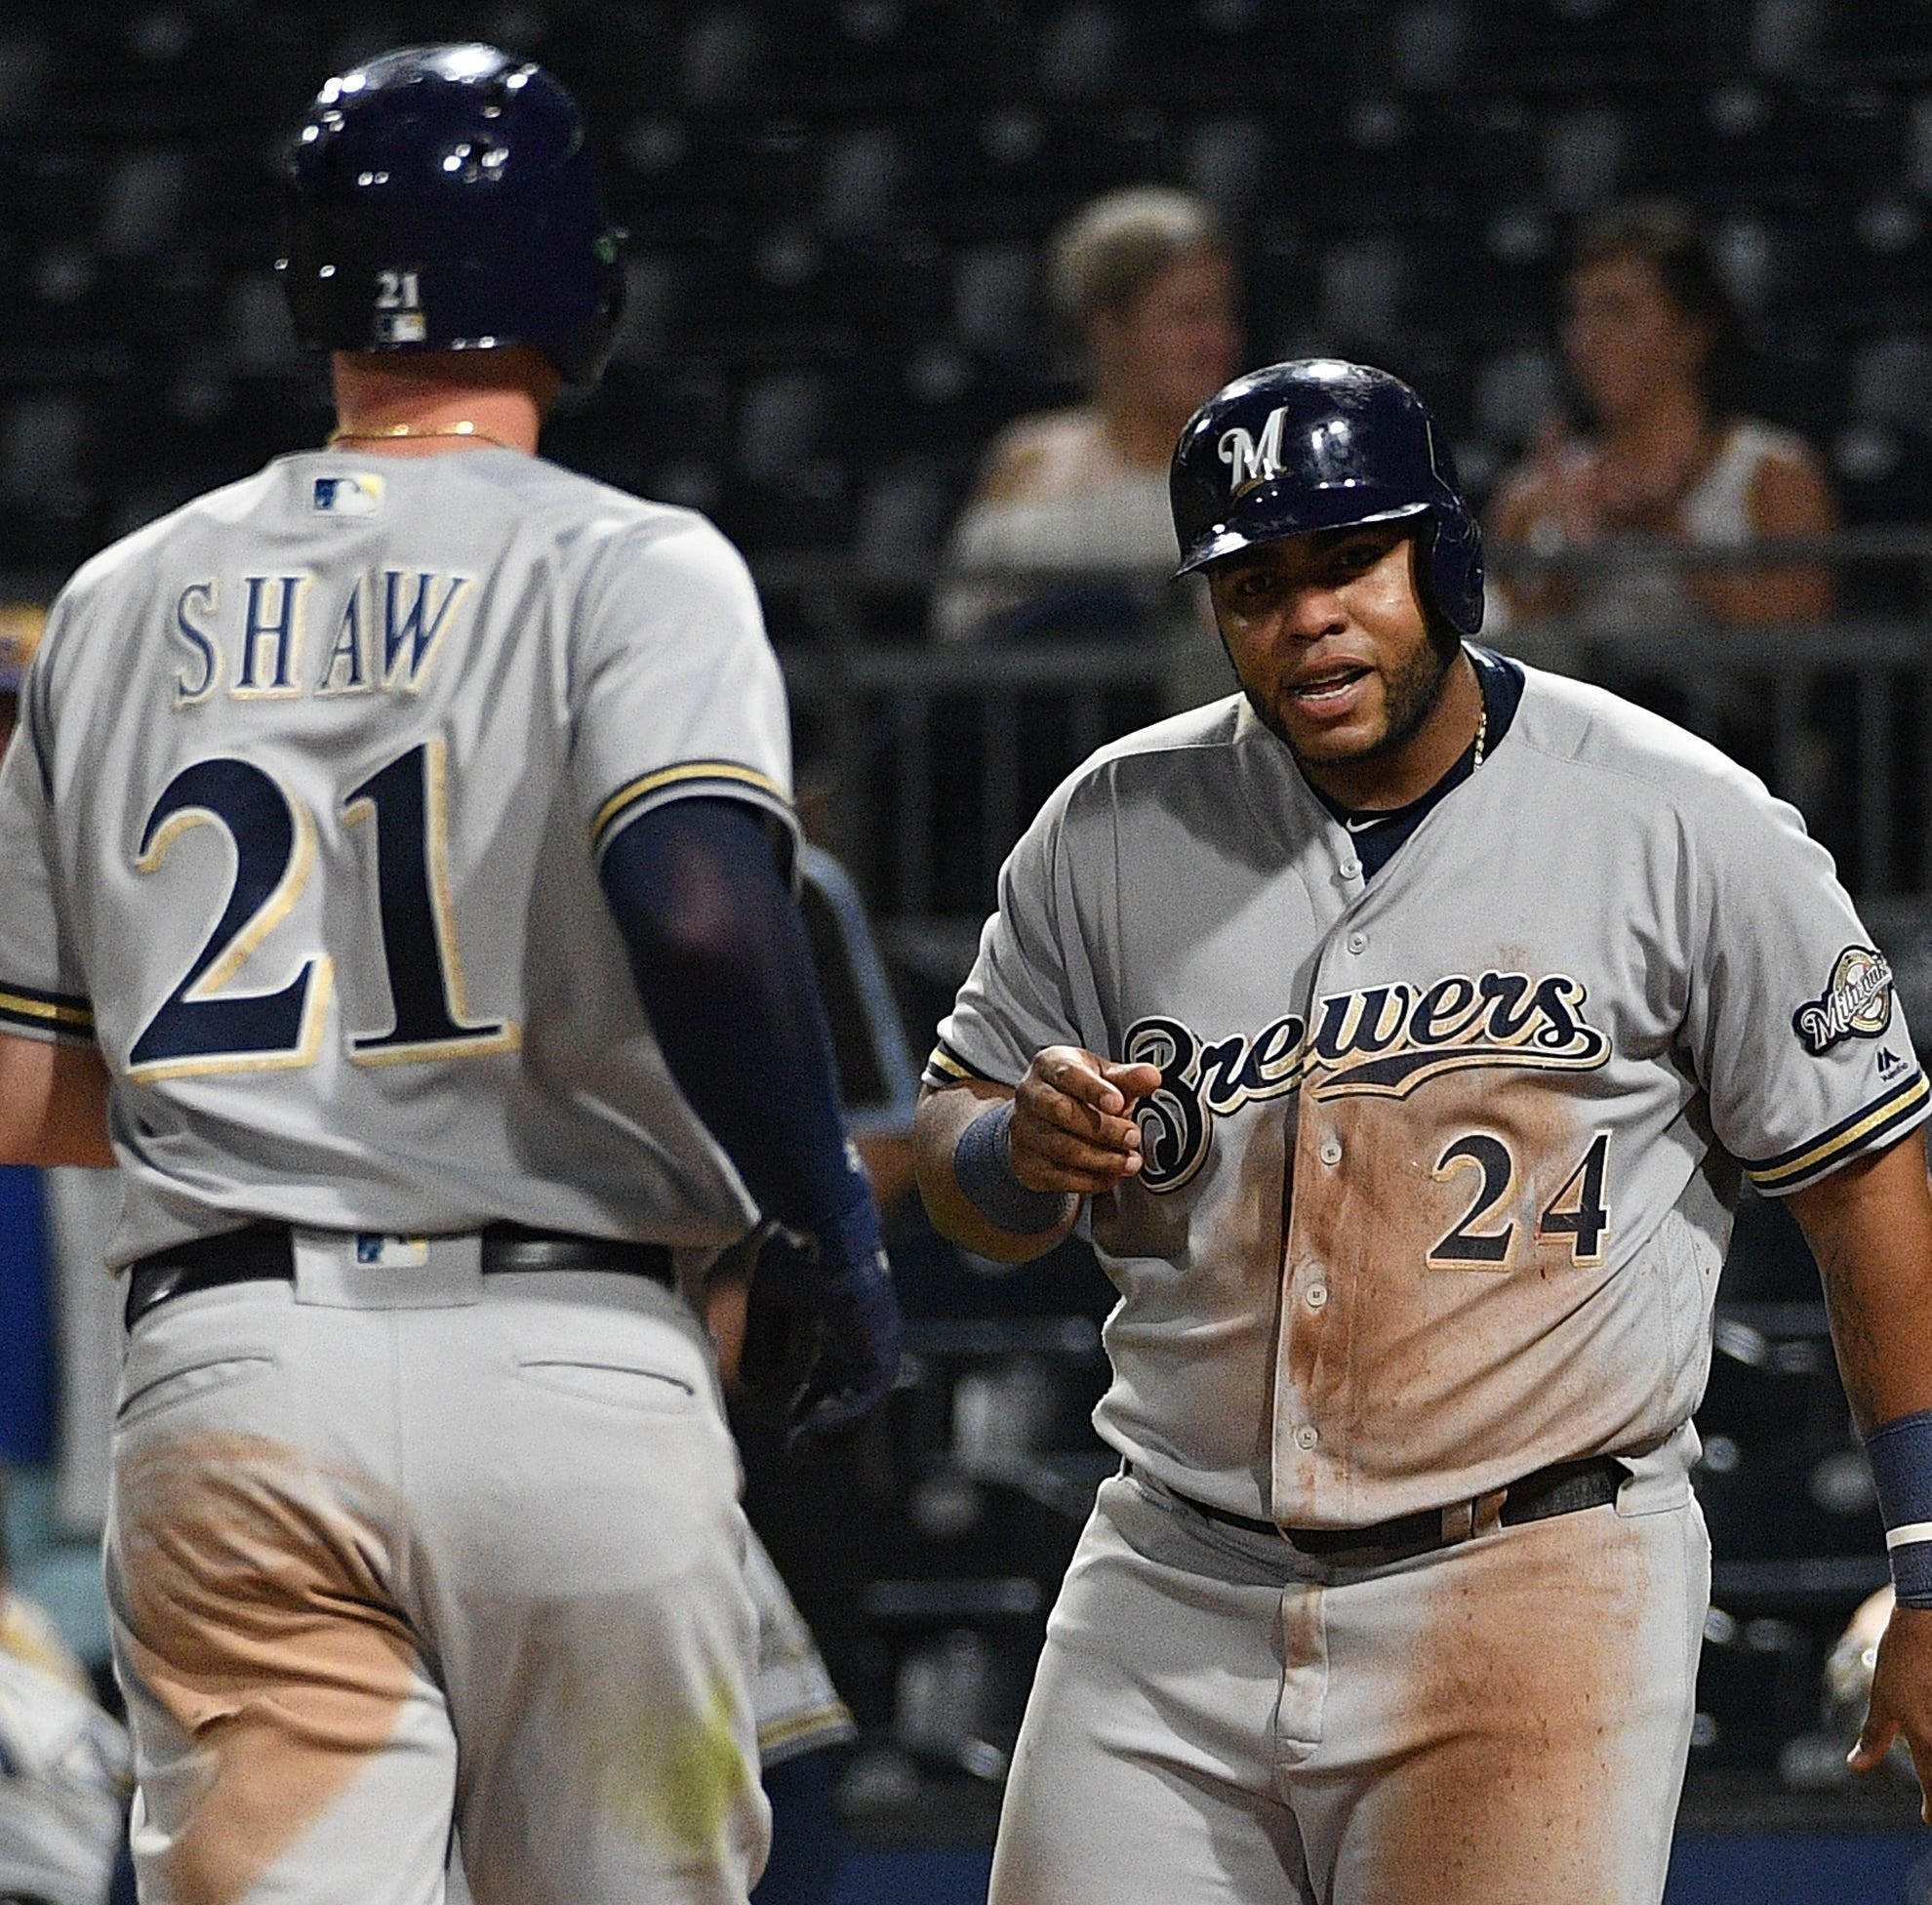 Brewers 8, Pirates 3: Rain delay helps deliver a decisive victory